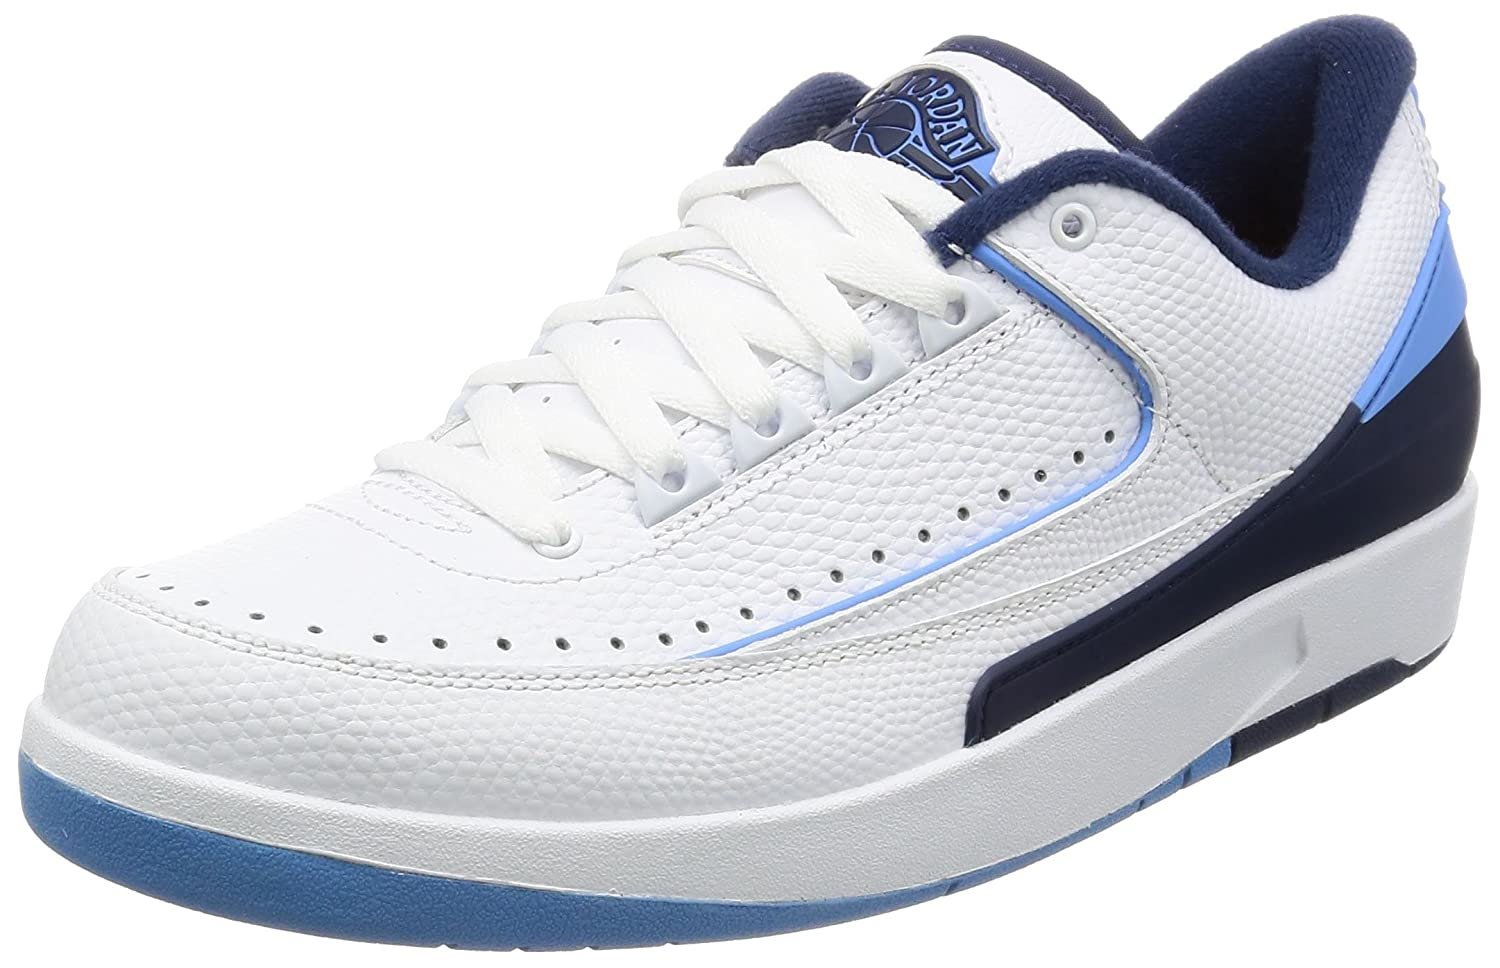 new style 8c6a1 3df95 Amazon.com   NIKE Air Jordan 2 Retro Low 832819-107 White Blue Leather  Men s Basketball Shoes (Size 10.5)   Basketball